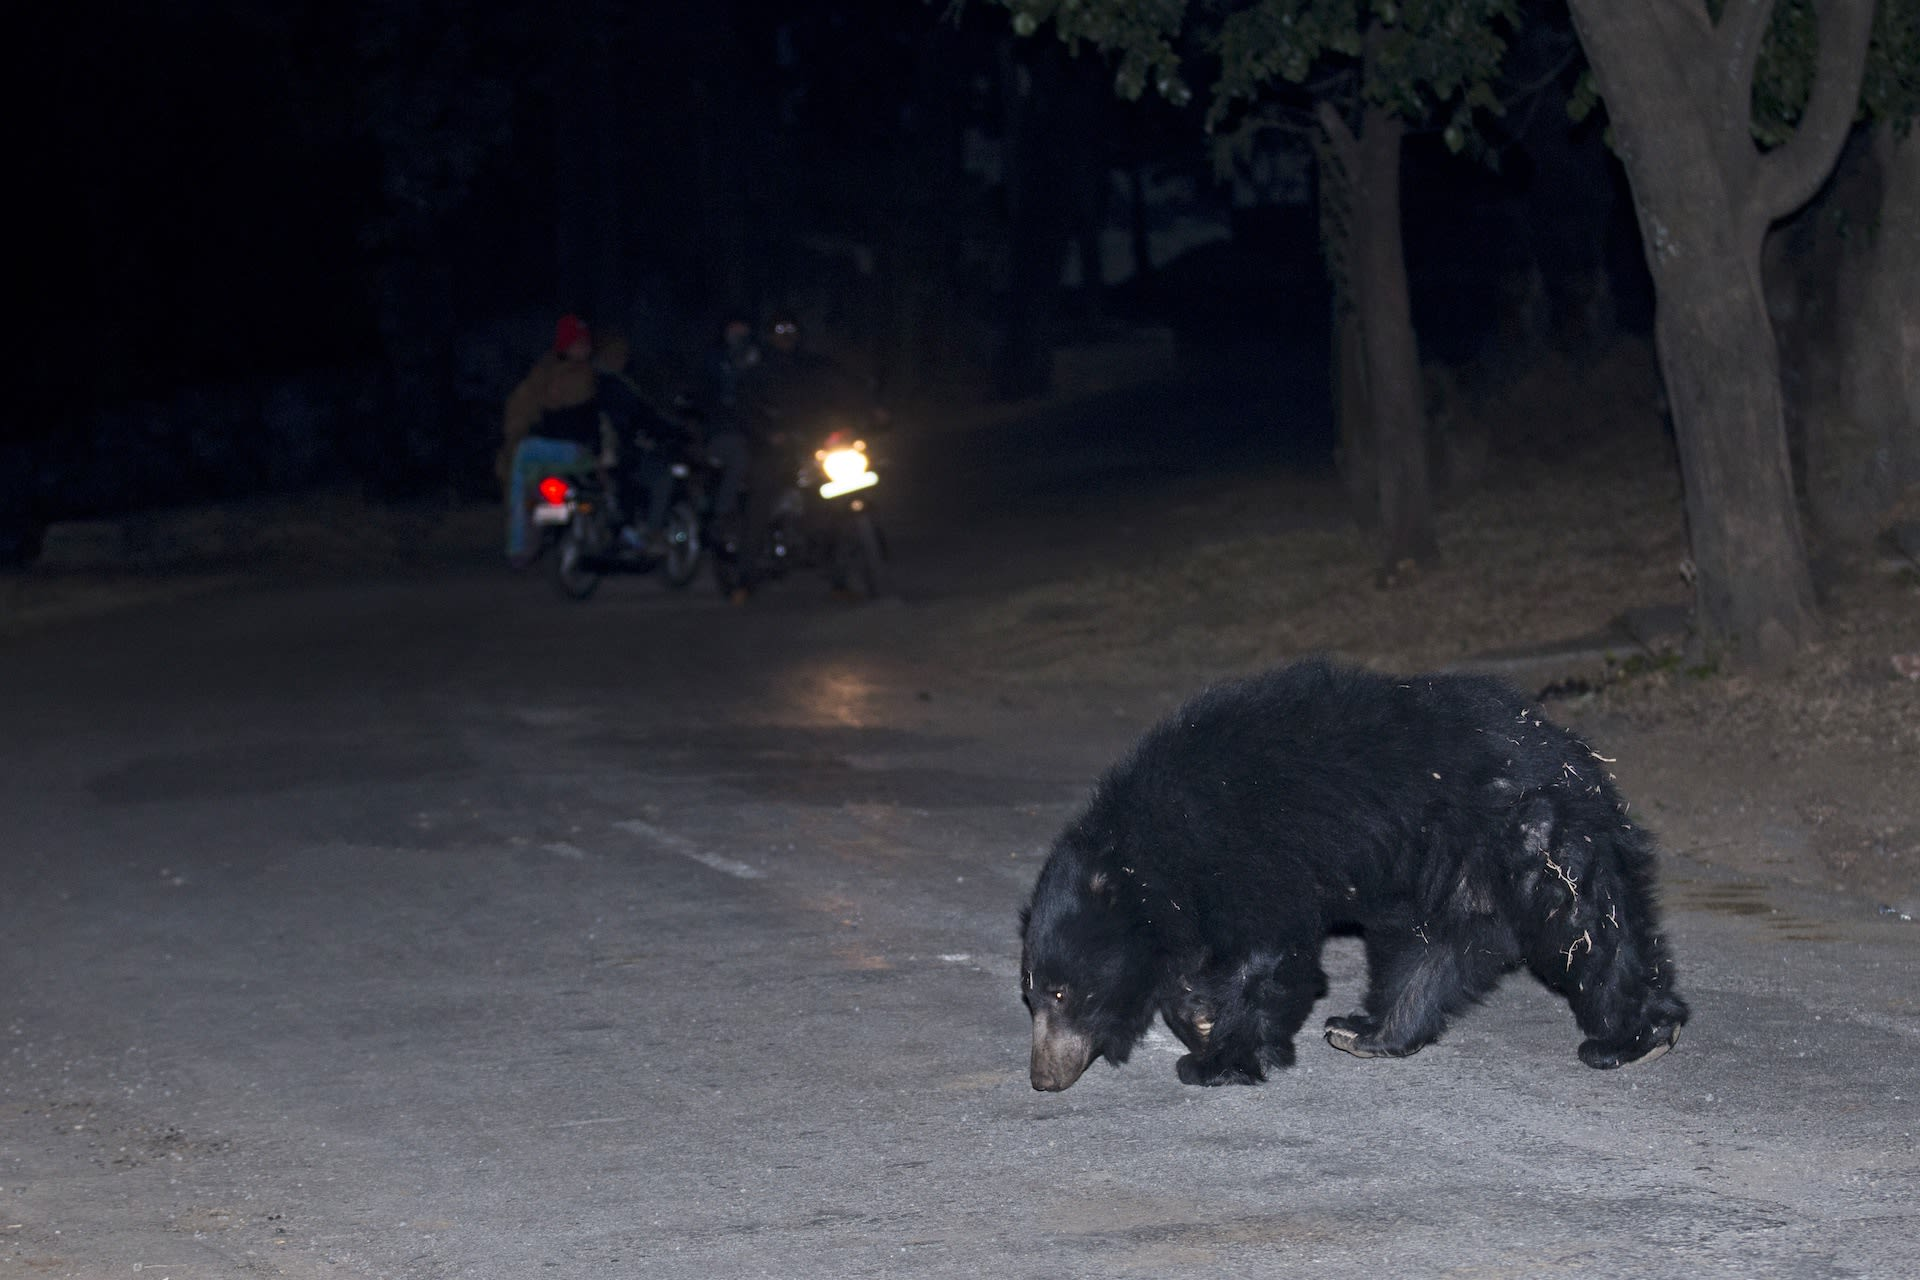 Sloth bears often wander out of the confines of protected areas in search of food and water as seen in this image from the Ratanmahal Sloth Bear Sanctuary. As bear habitats across the country become increasingly fragmented due to infrastructure projects and changing land use patterns, encounters with humans are on the rise. Photo: Vickey Chauhan, CC BY-SA 4.0